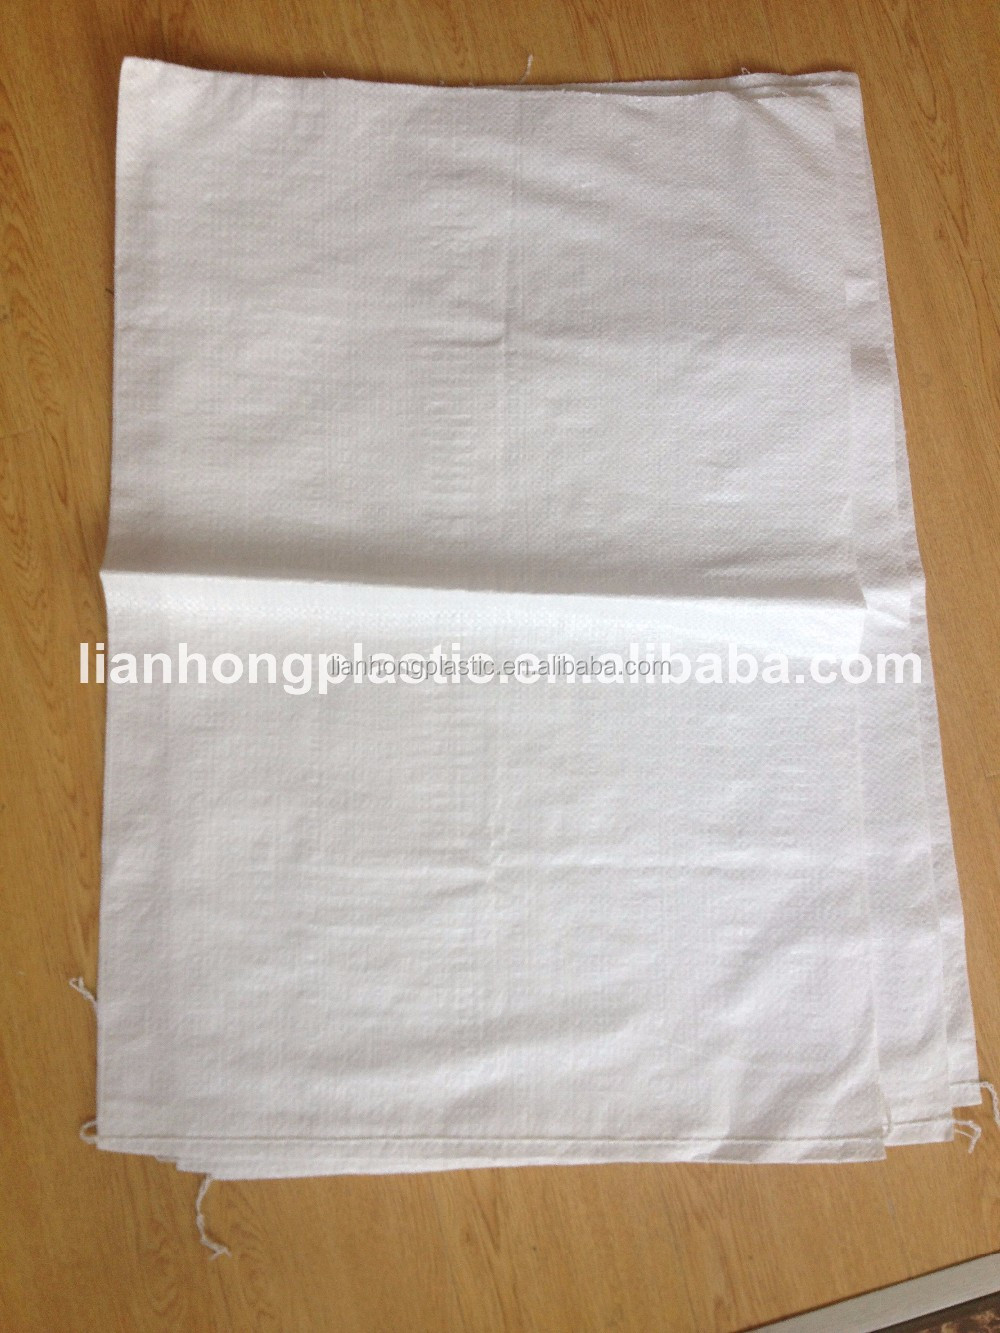 Whole 20kg 25kg Polypropylene Woven Sand Bags Plastic Containers For Cement Flour Packaging Pp